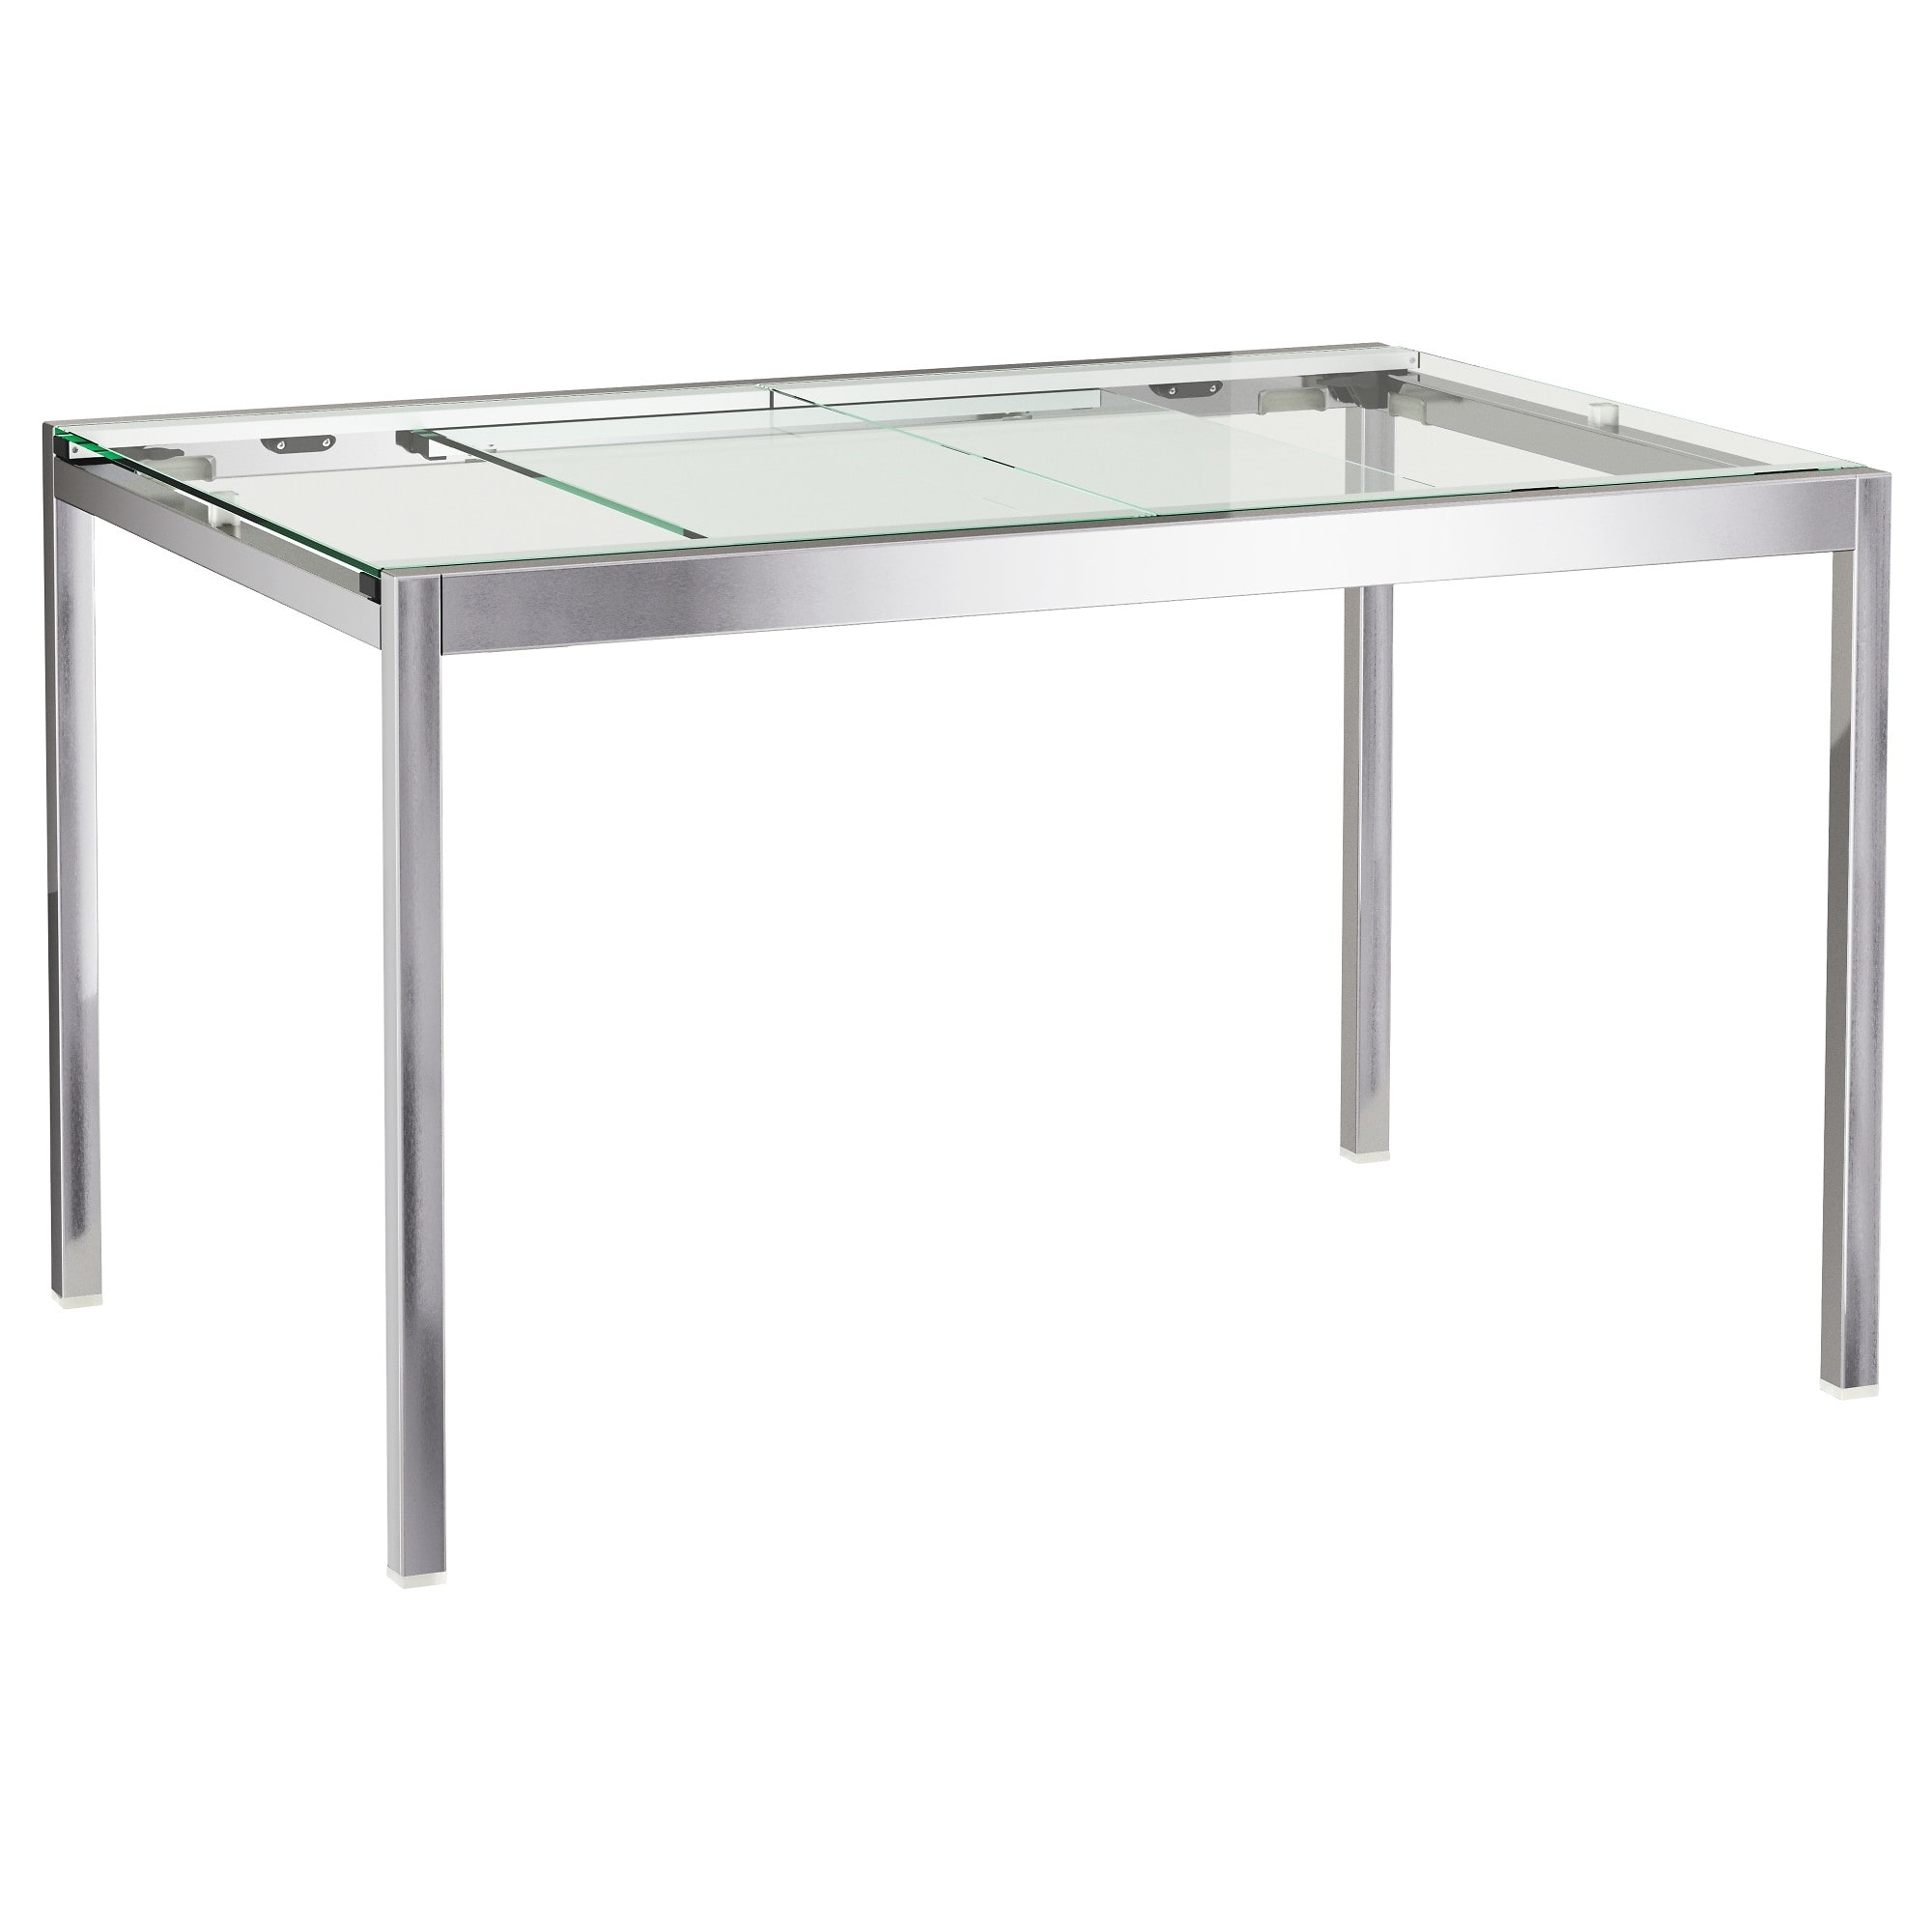 Ikea Pertaining To Latest White Extendable Dining Tables (View 23 of 25)